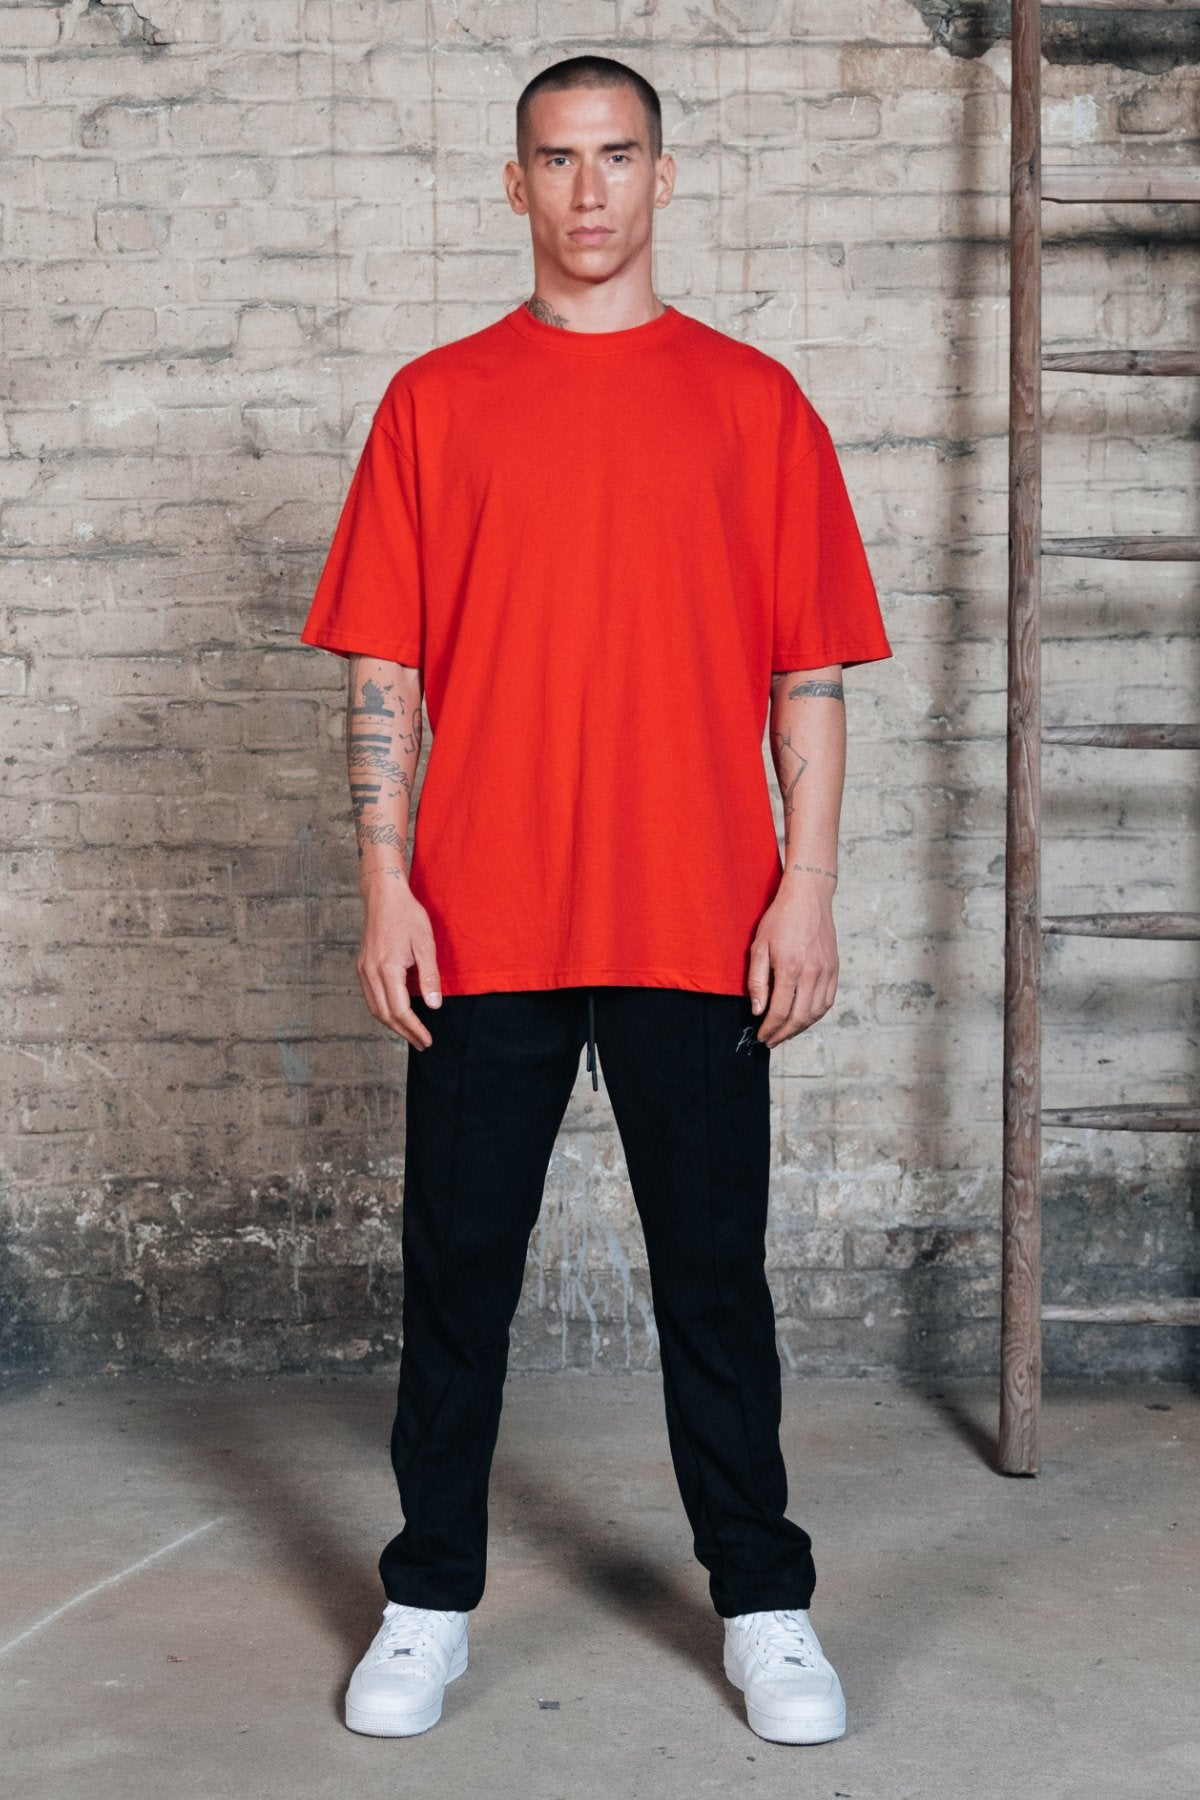 Oversized Tee Washed Blood Red T-SHIRT One blood